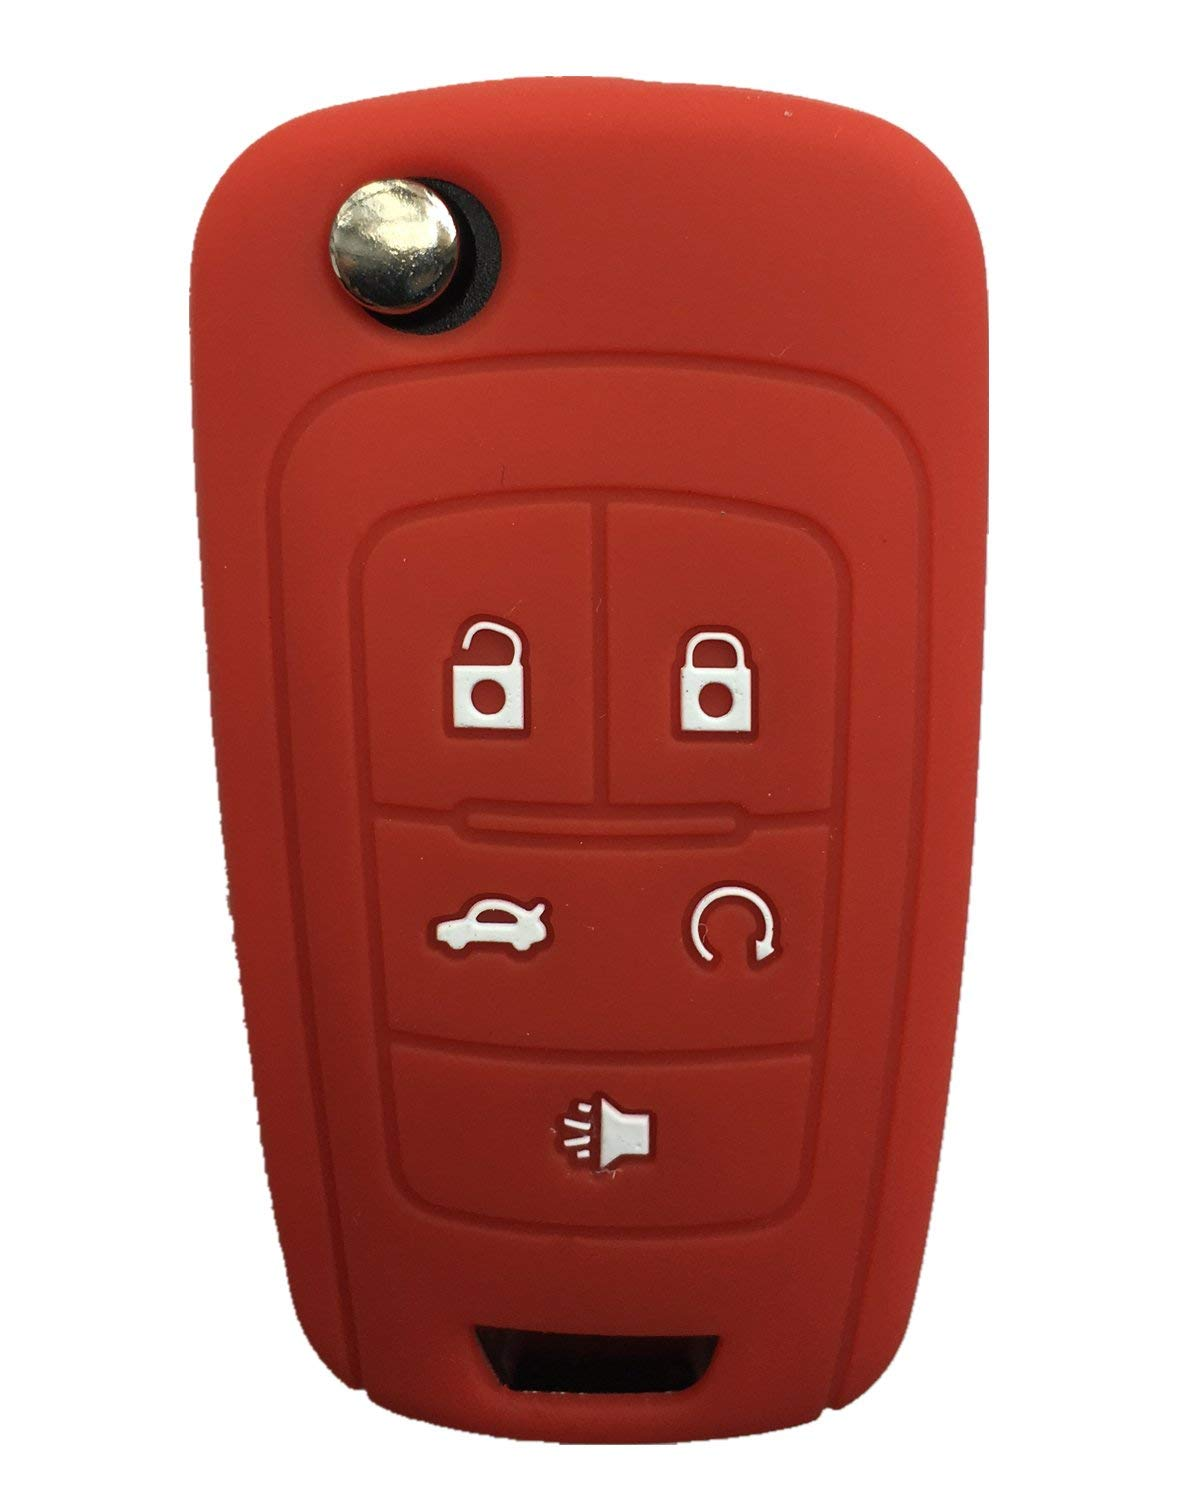 Rpkey Silicone Keyless Entry Remote Control Key Fob Cover Case protector For Buick Encore LaCrosse Regal Verano(gules) OHT01060512 5461A-01060512